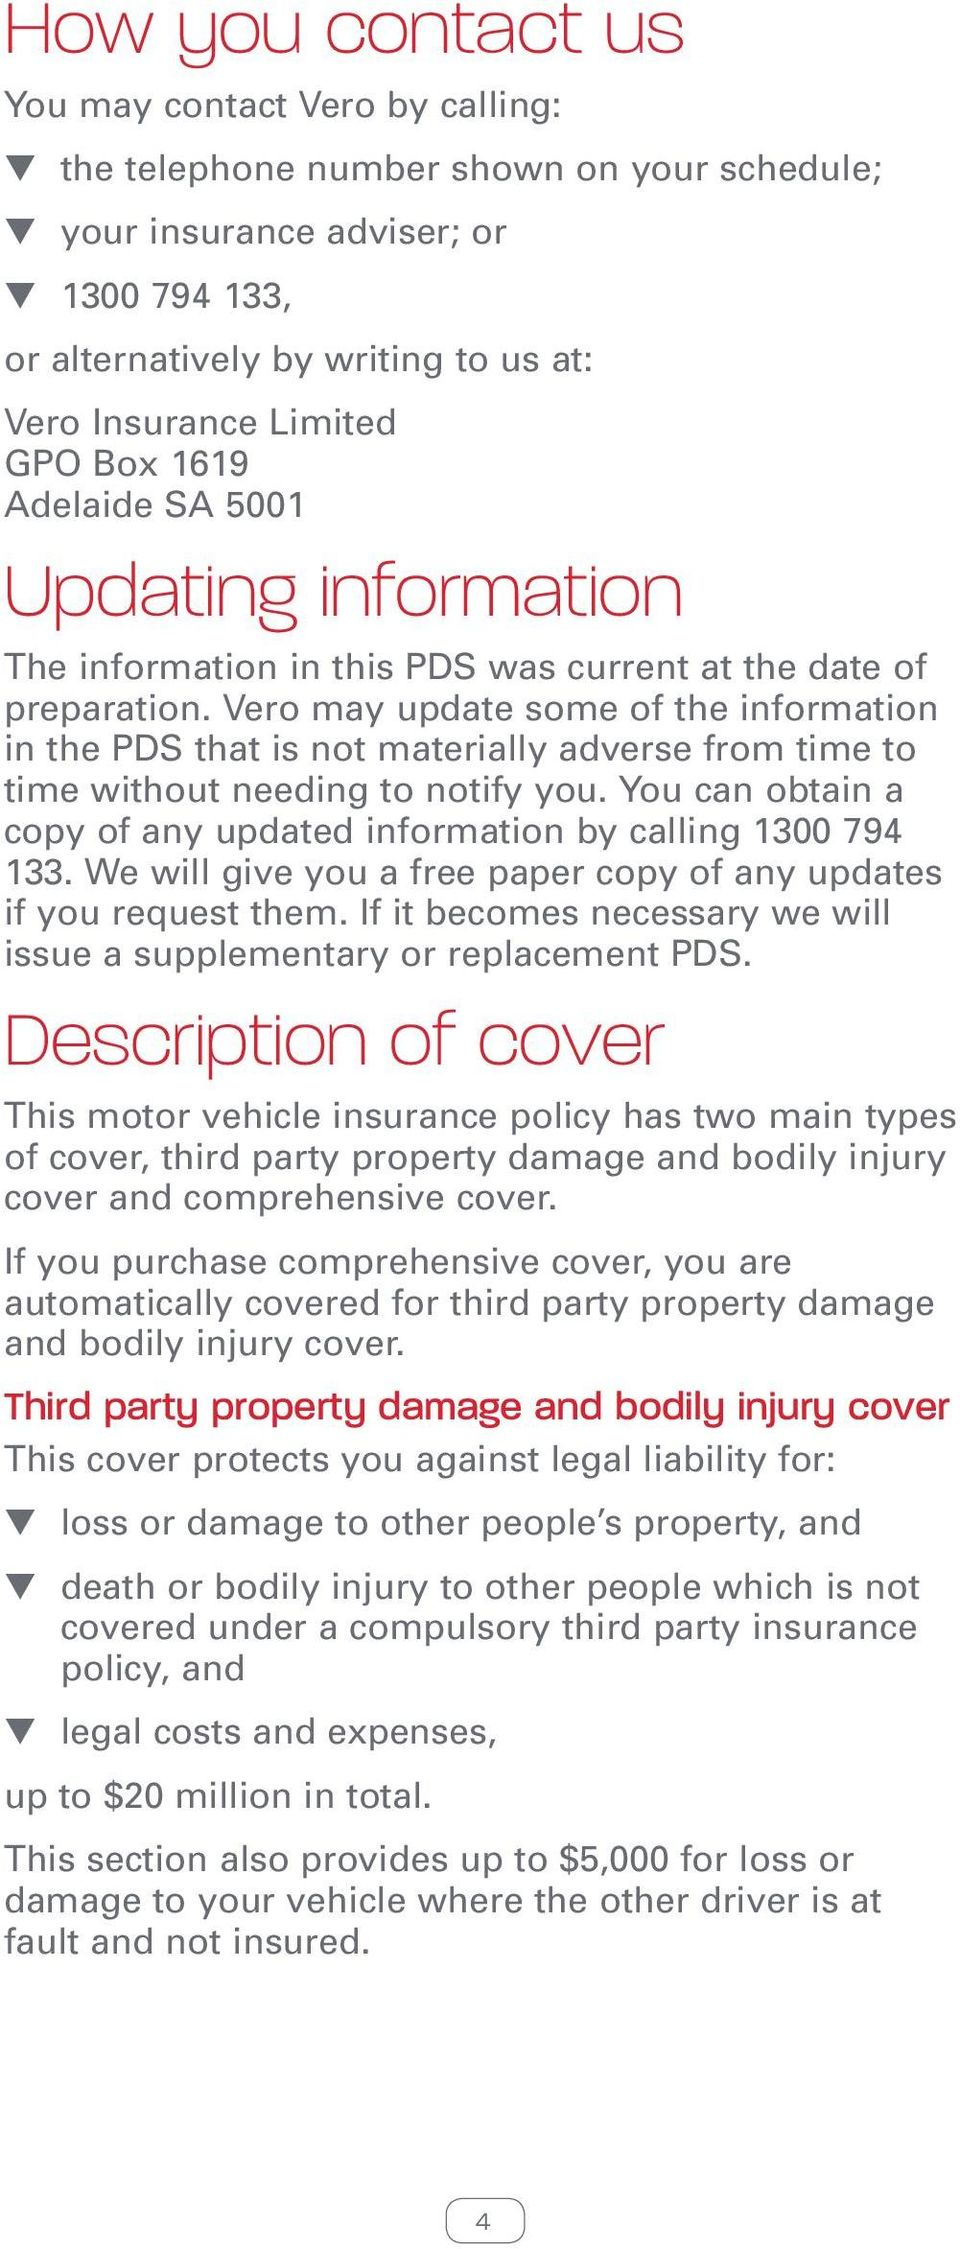 Vero may update some of the information in the PDS that is not materially adverse from time to time without needing to notify you.